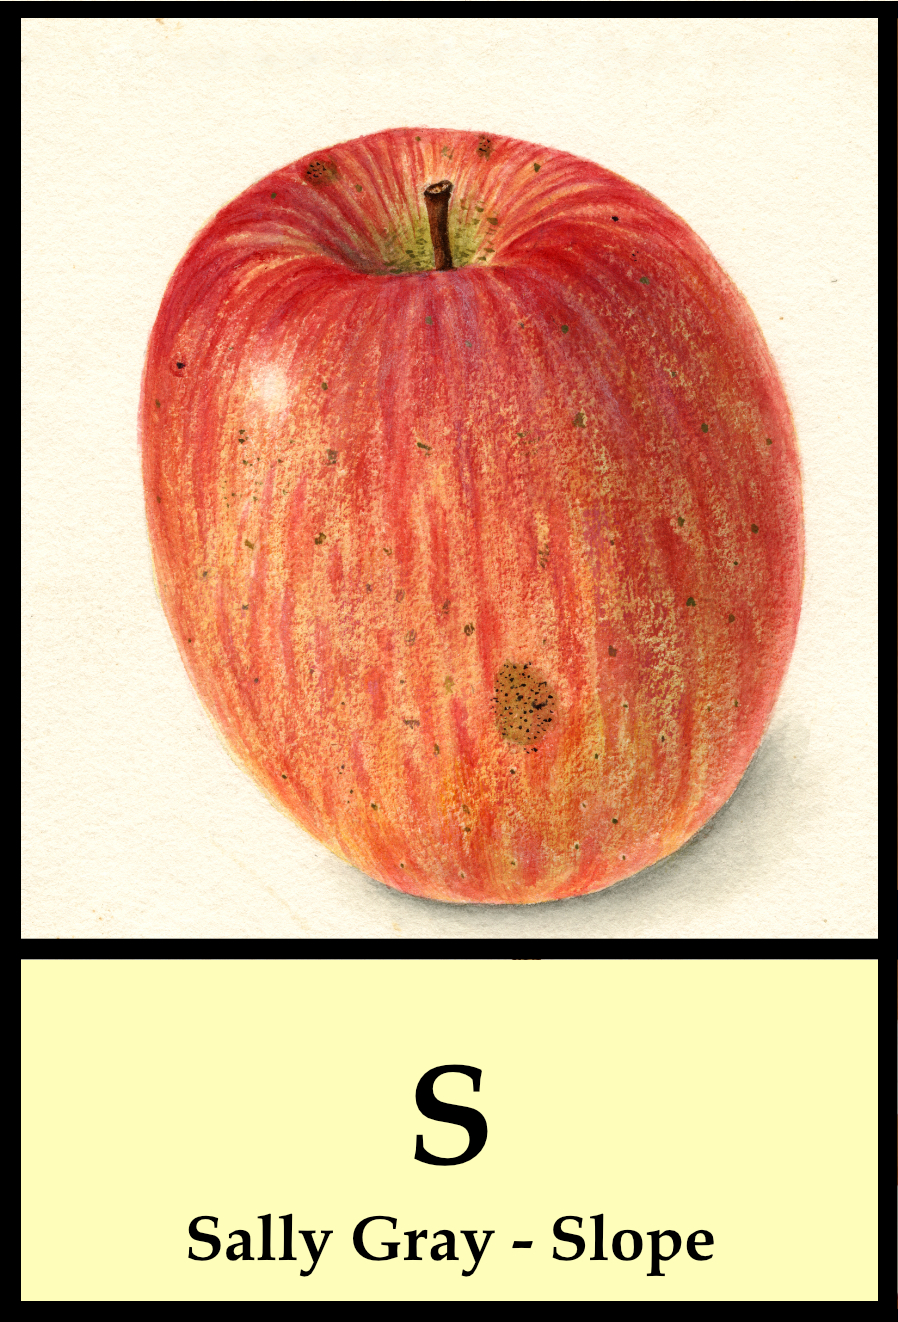 S apples - Sally Gray to Slope